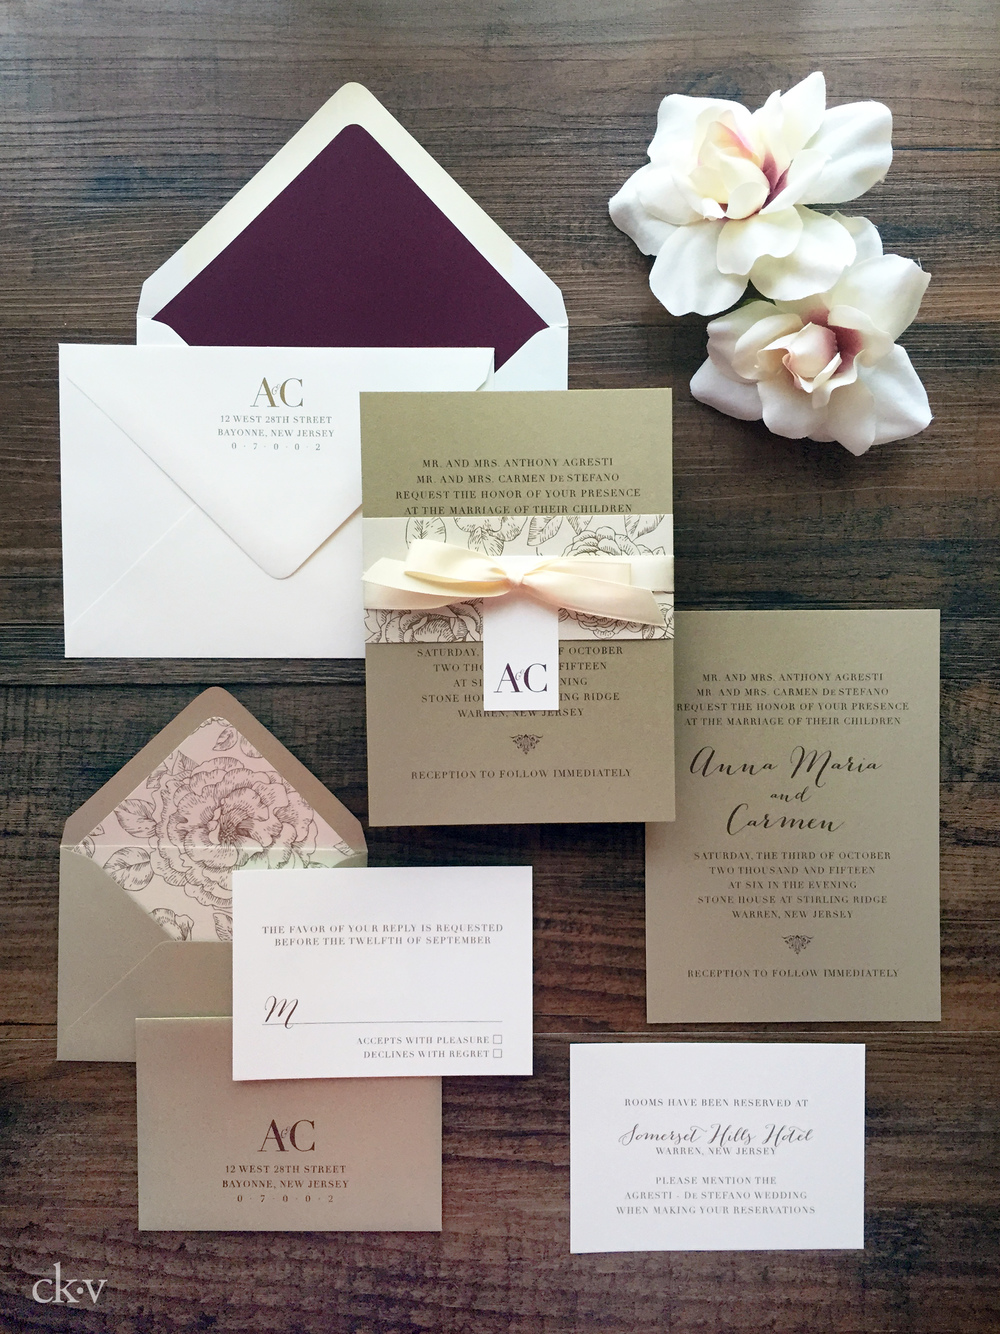 Rustic chic wedding invitation suite with custom monogram and antique gold rose envelope liners.